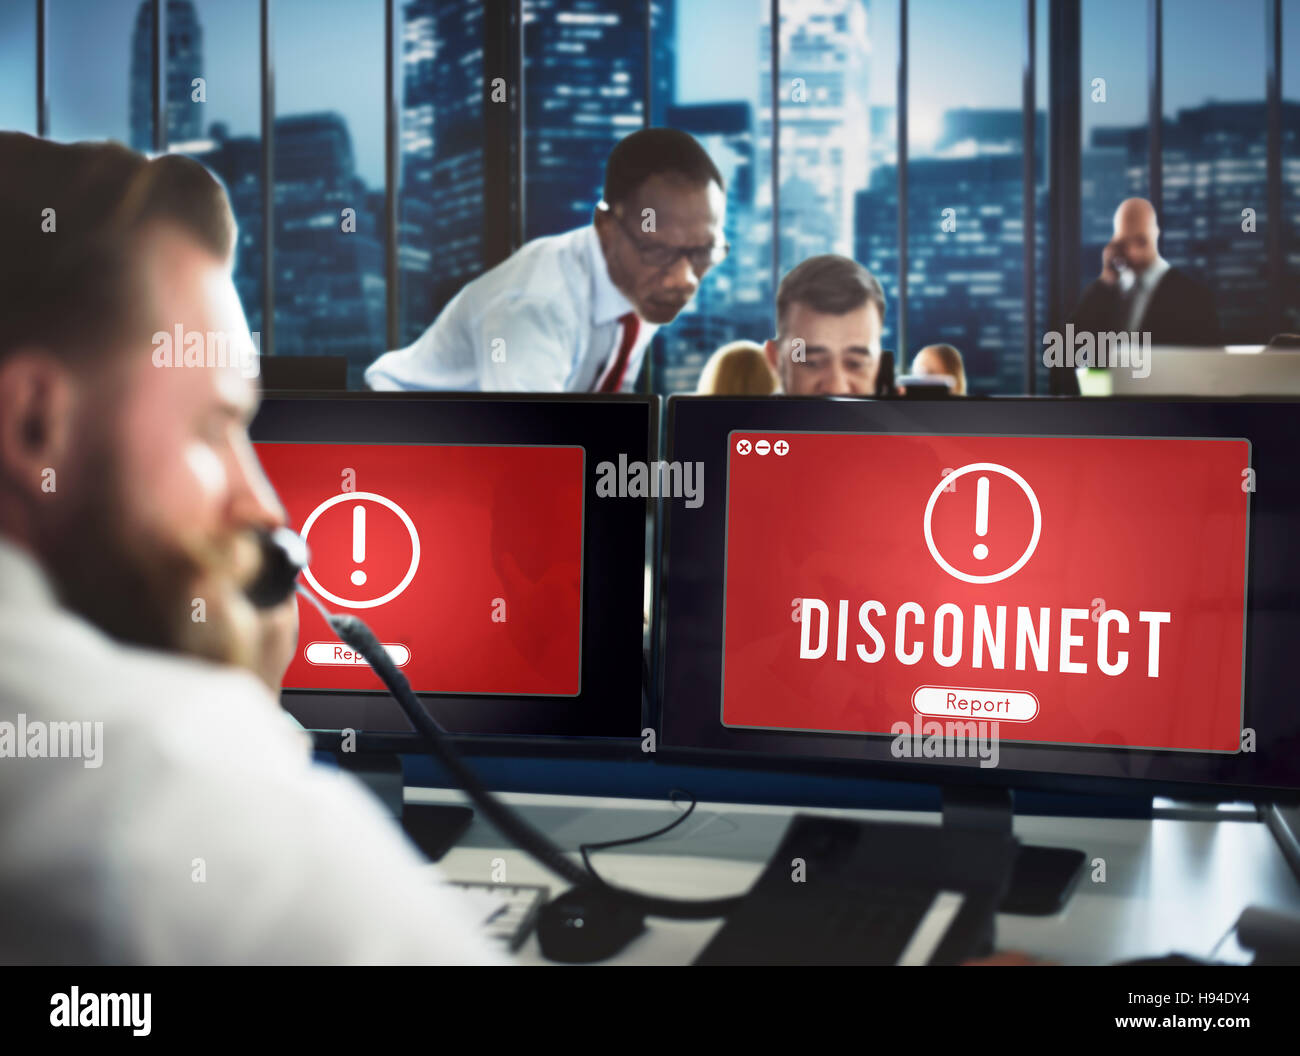 Disconnect Network Problem Technology Software Concept Stock Photo